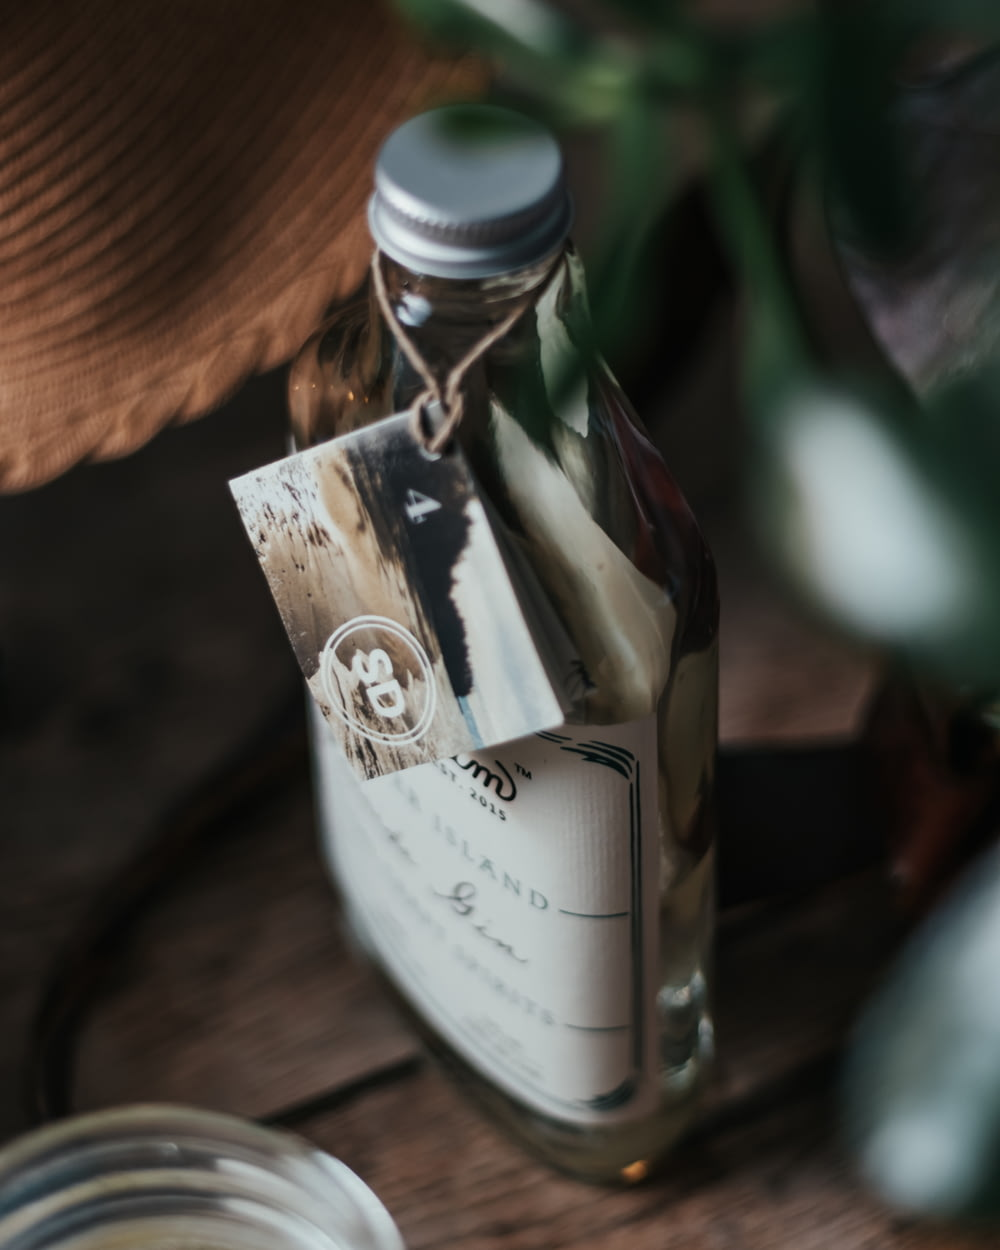 white labeled bottle on brown wooden table